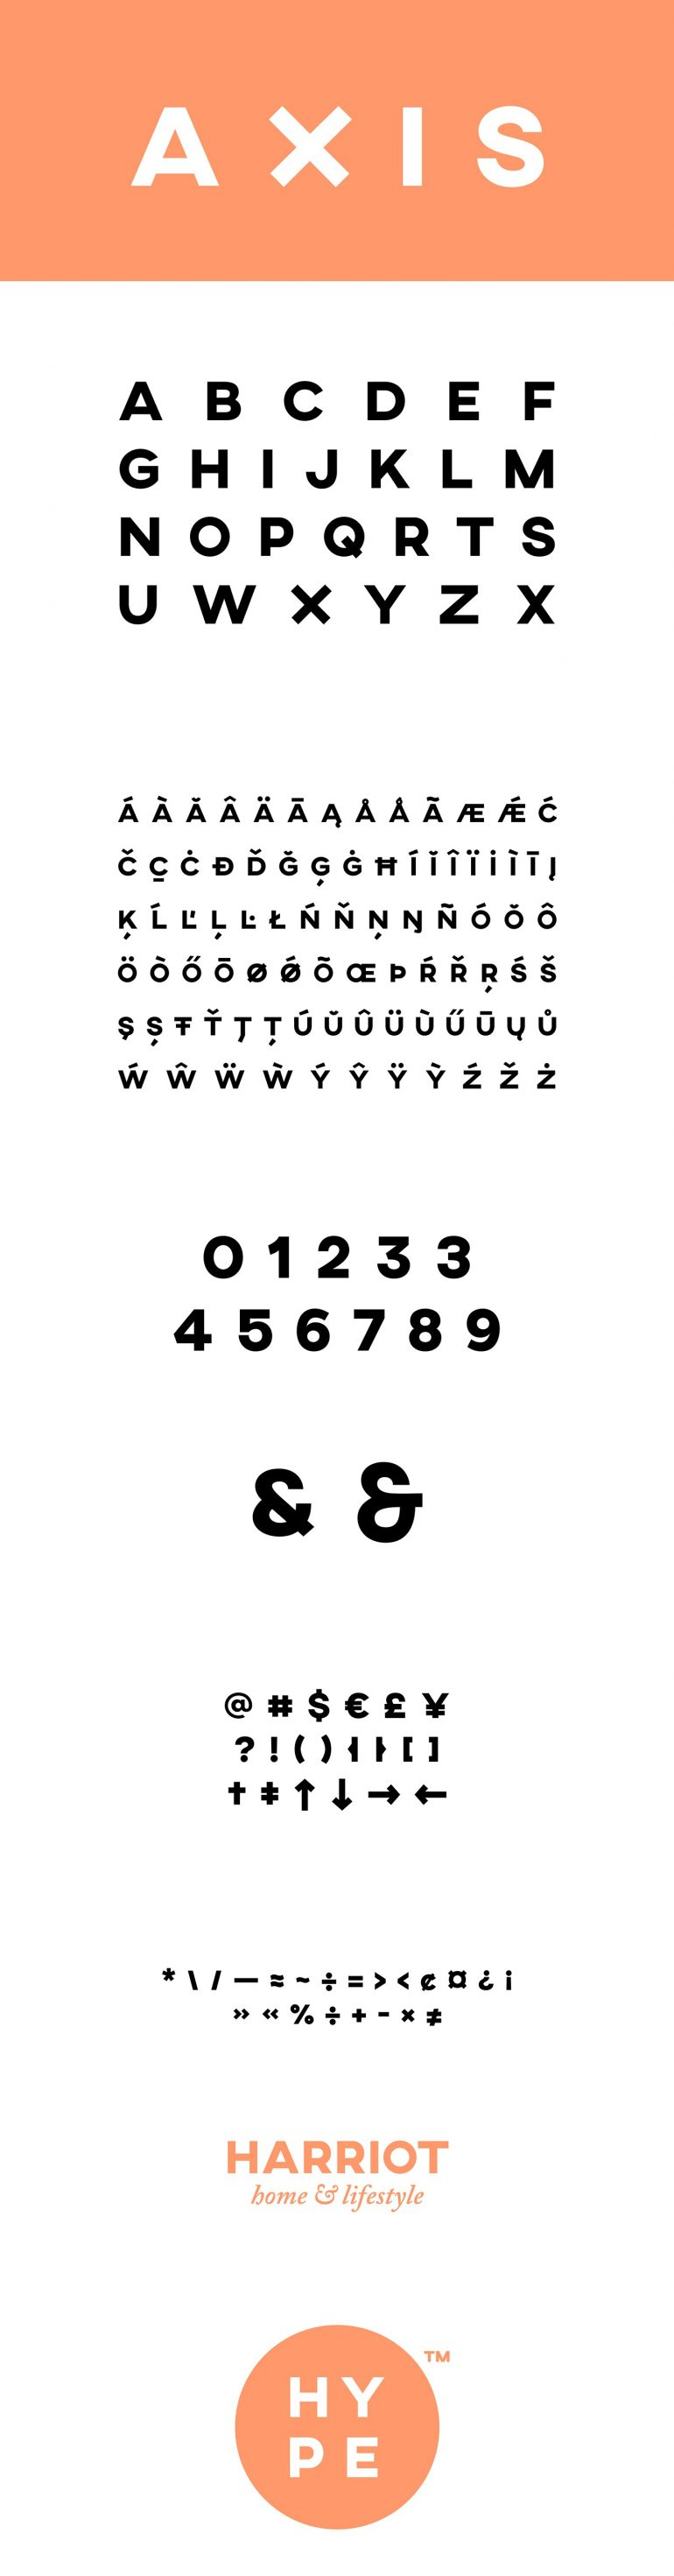 AXIS Typeface